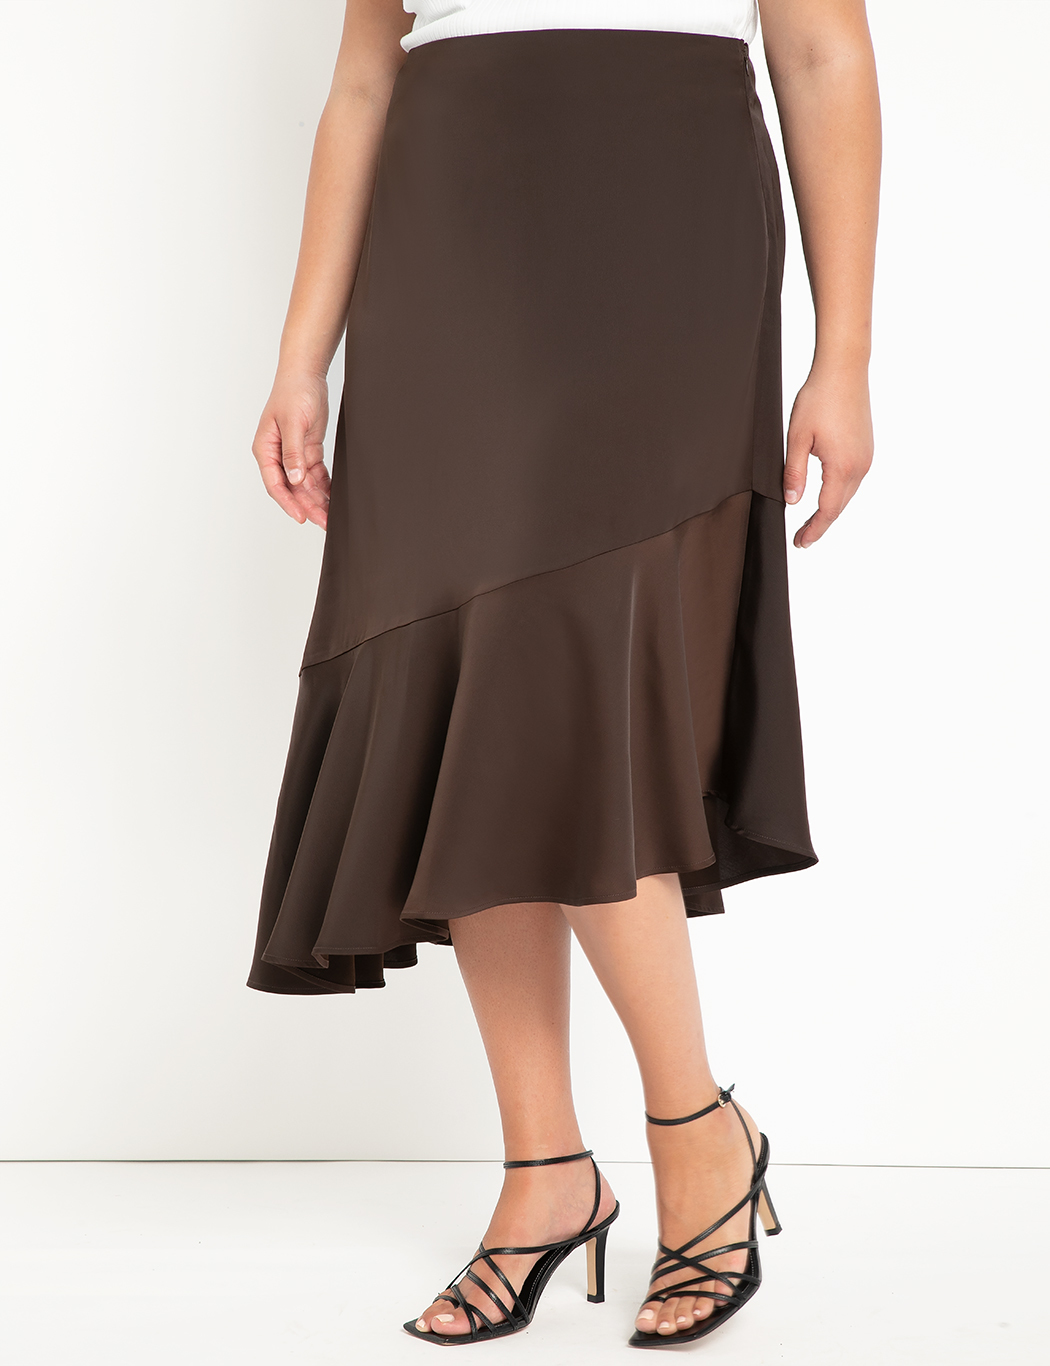 Satin Skirt with Flounce